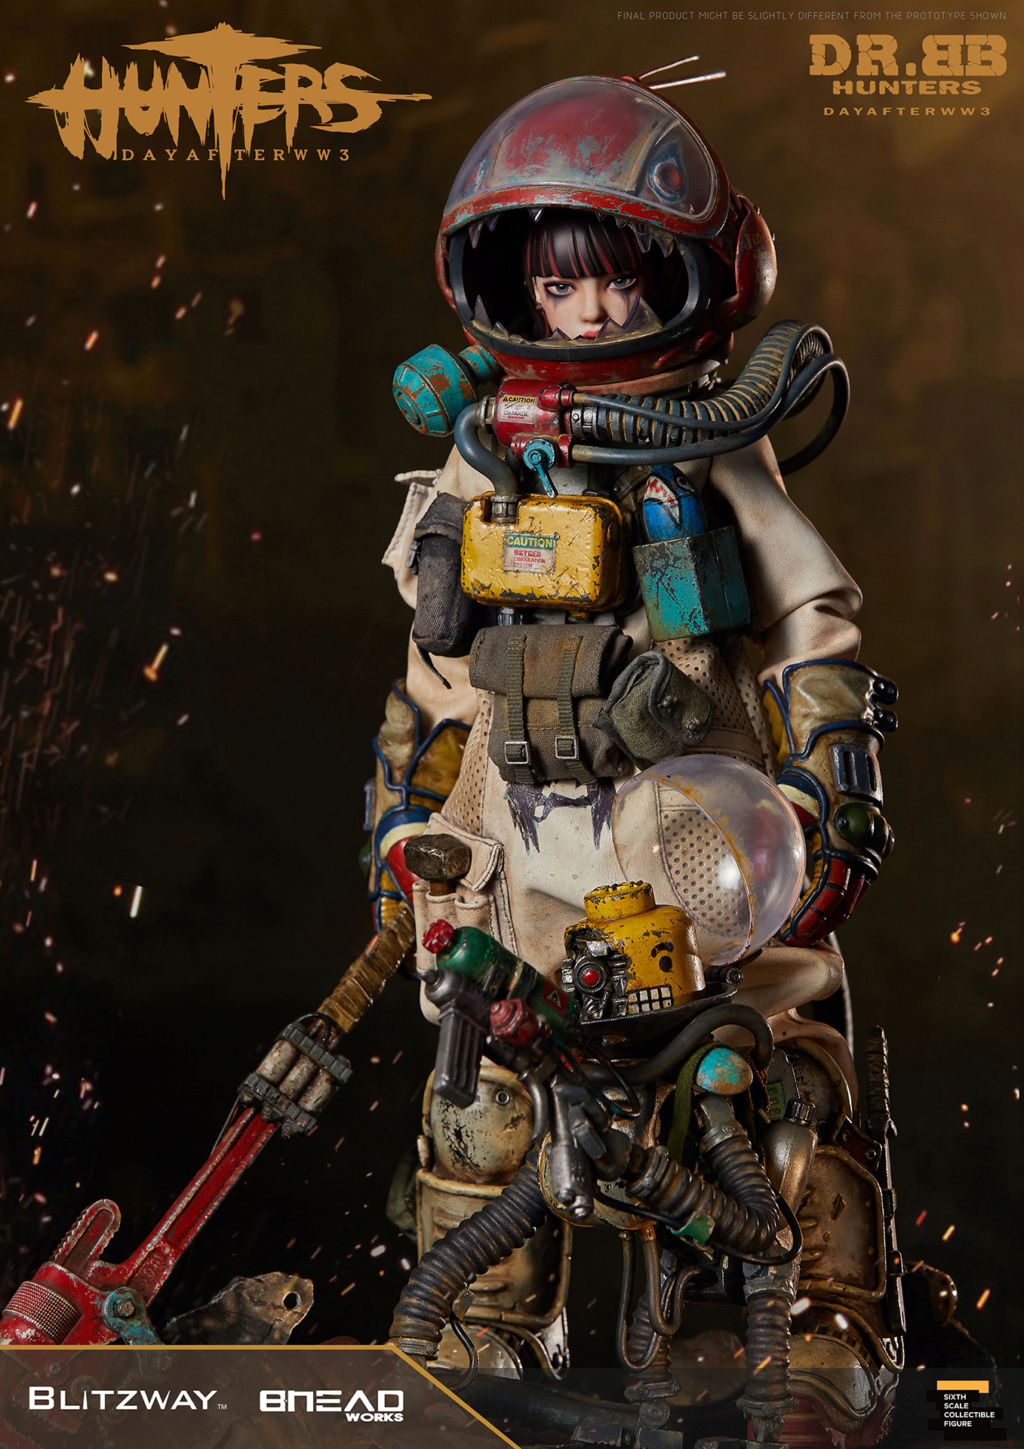 Robot - NEW PRODUCT: Blitzway: 1/6 scale HUNTERS : Day After WWlll: Dr.BB Action Figure 21144